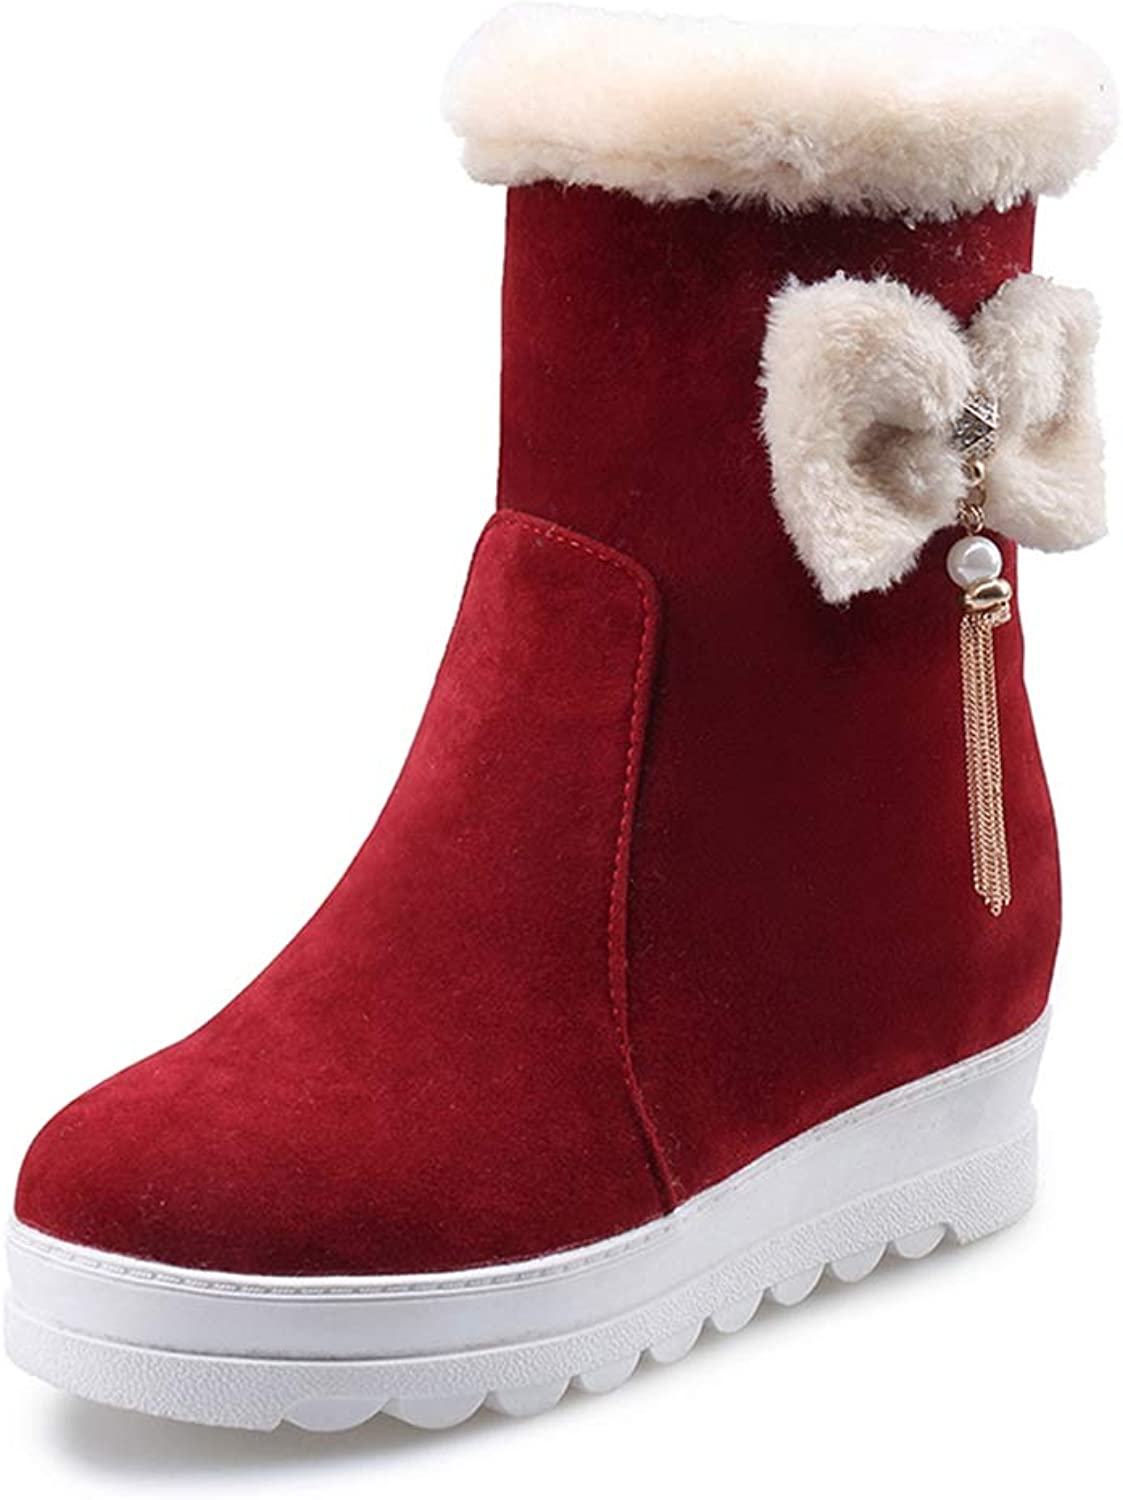 T-JULY Platform Warm shoes Woman Snow Boots Slip On Add Fur Winter Woman shoes Mid Calf Boots Large Size 34-43